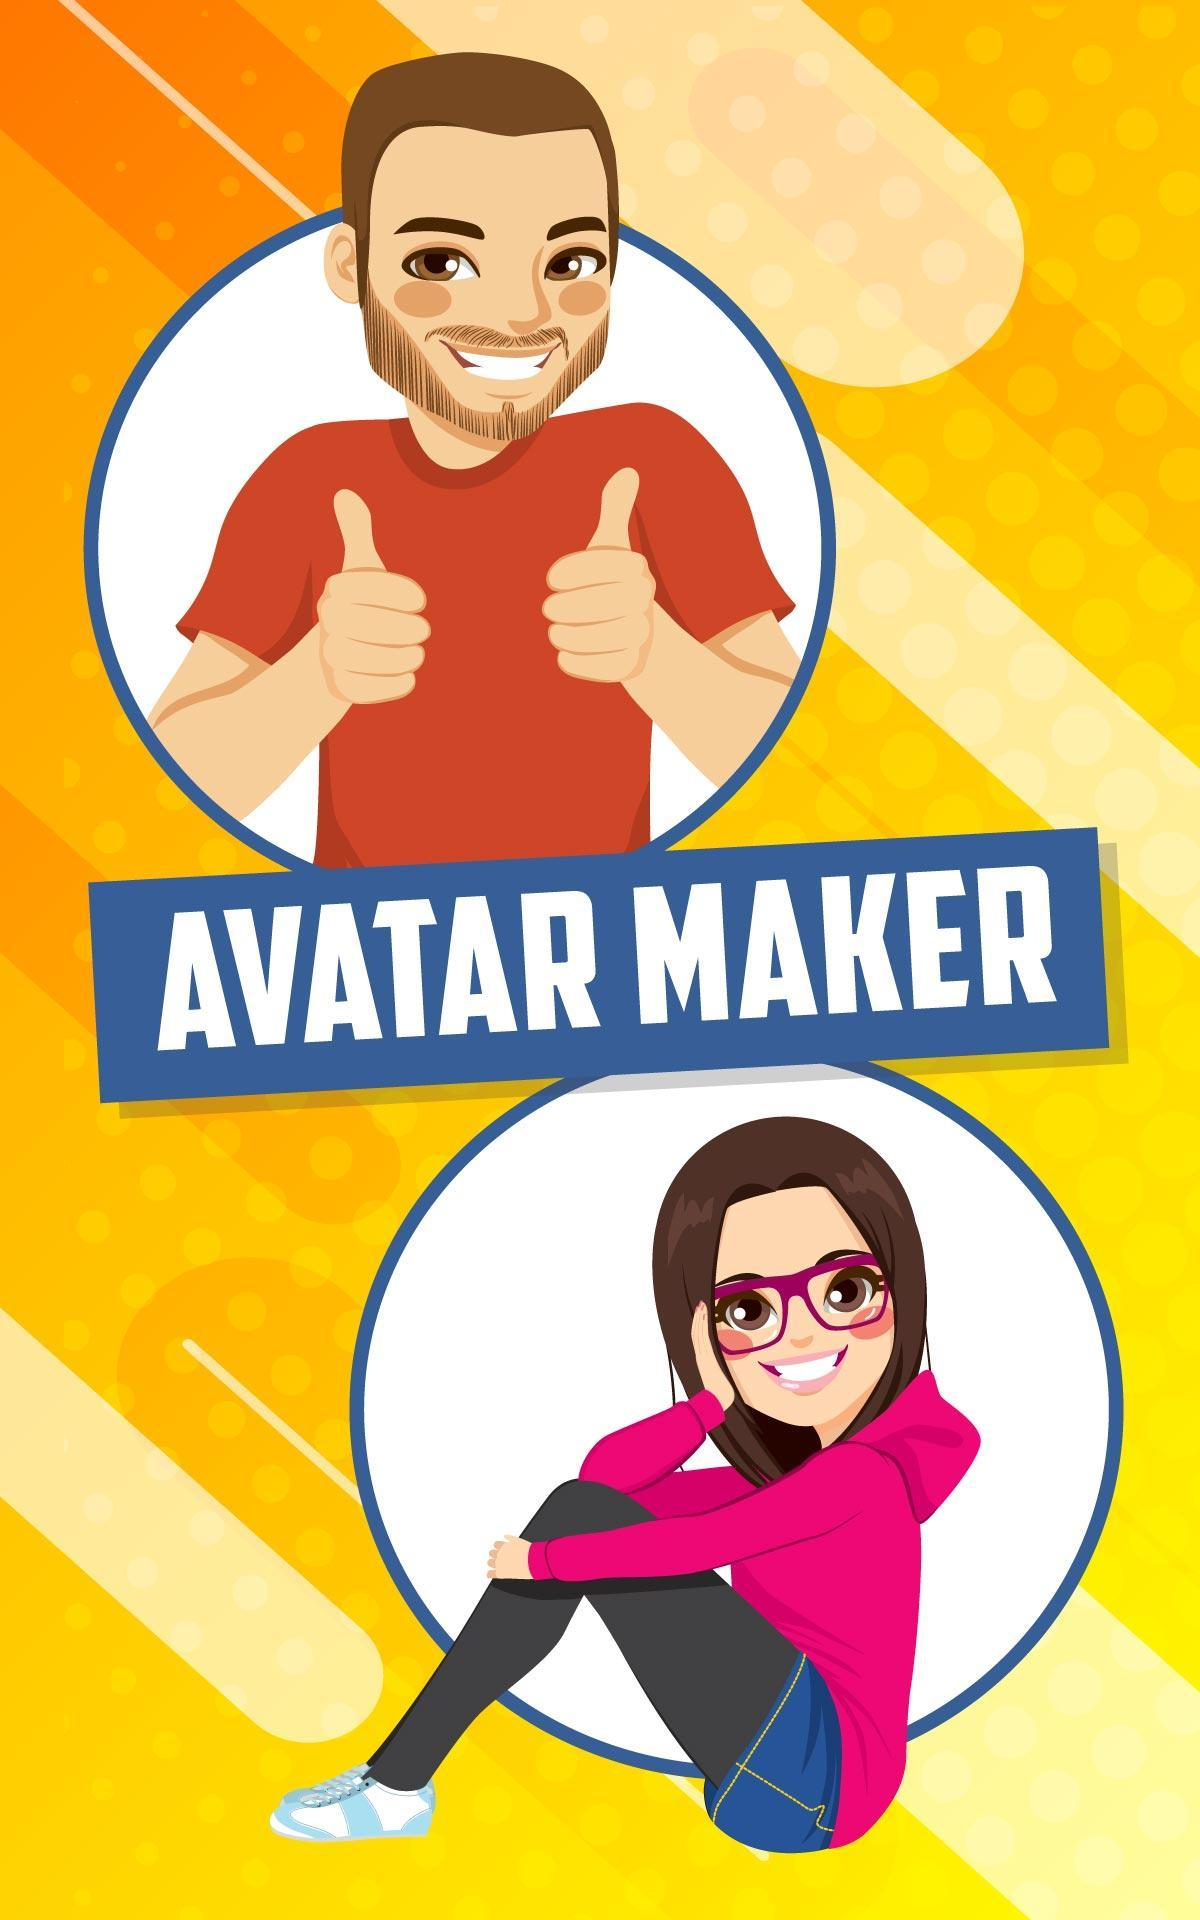 Personal Cartoon Avatar Maker for Android - APK Download